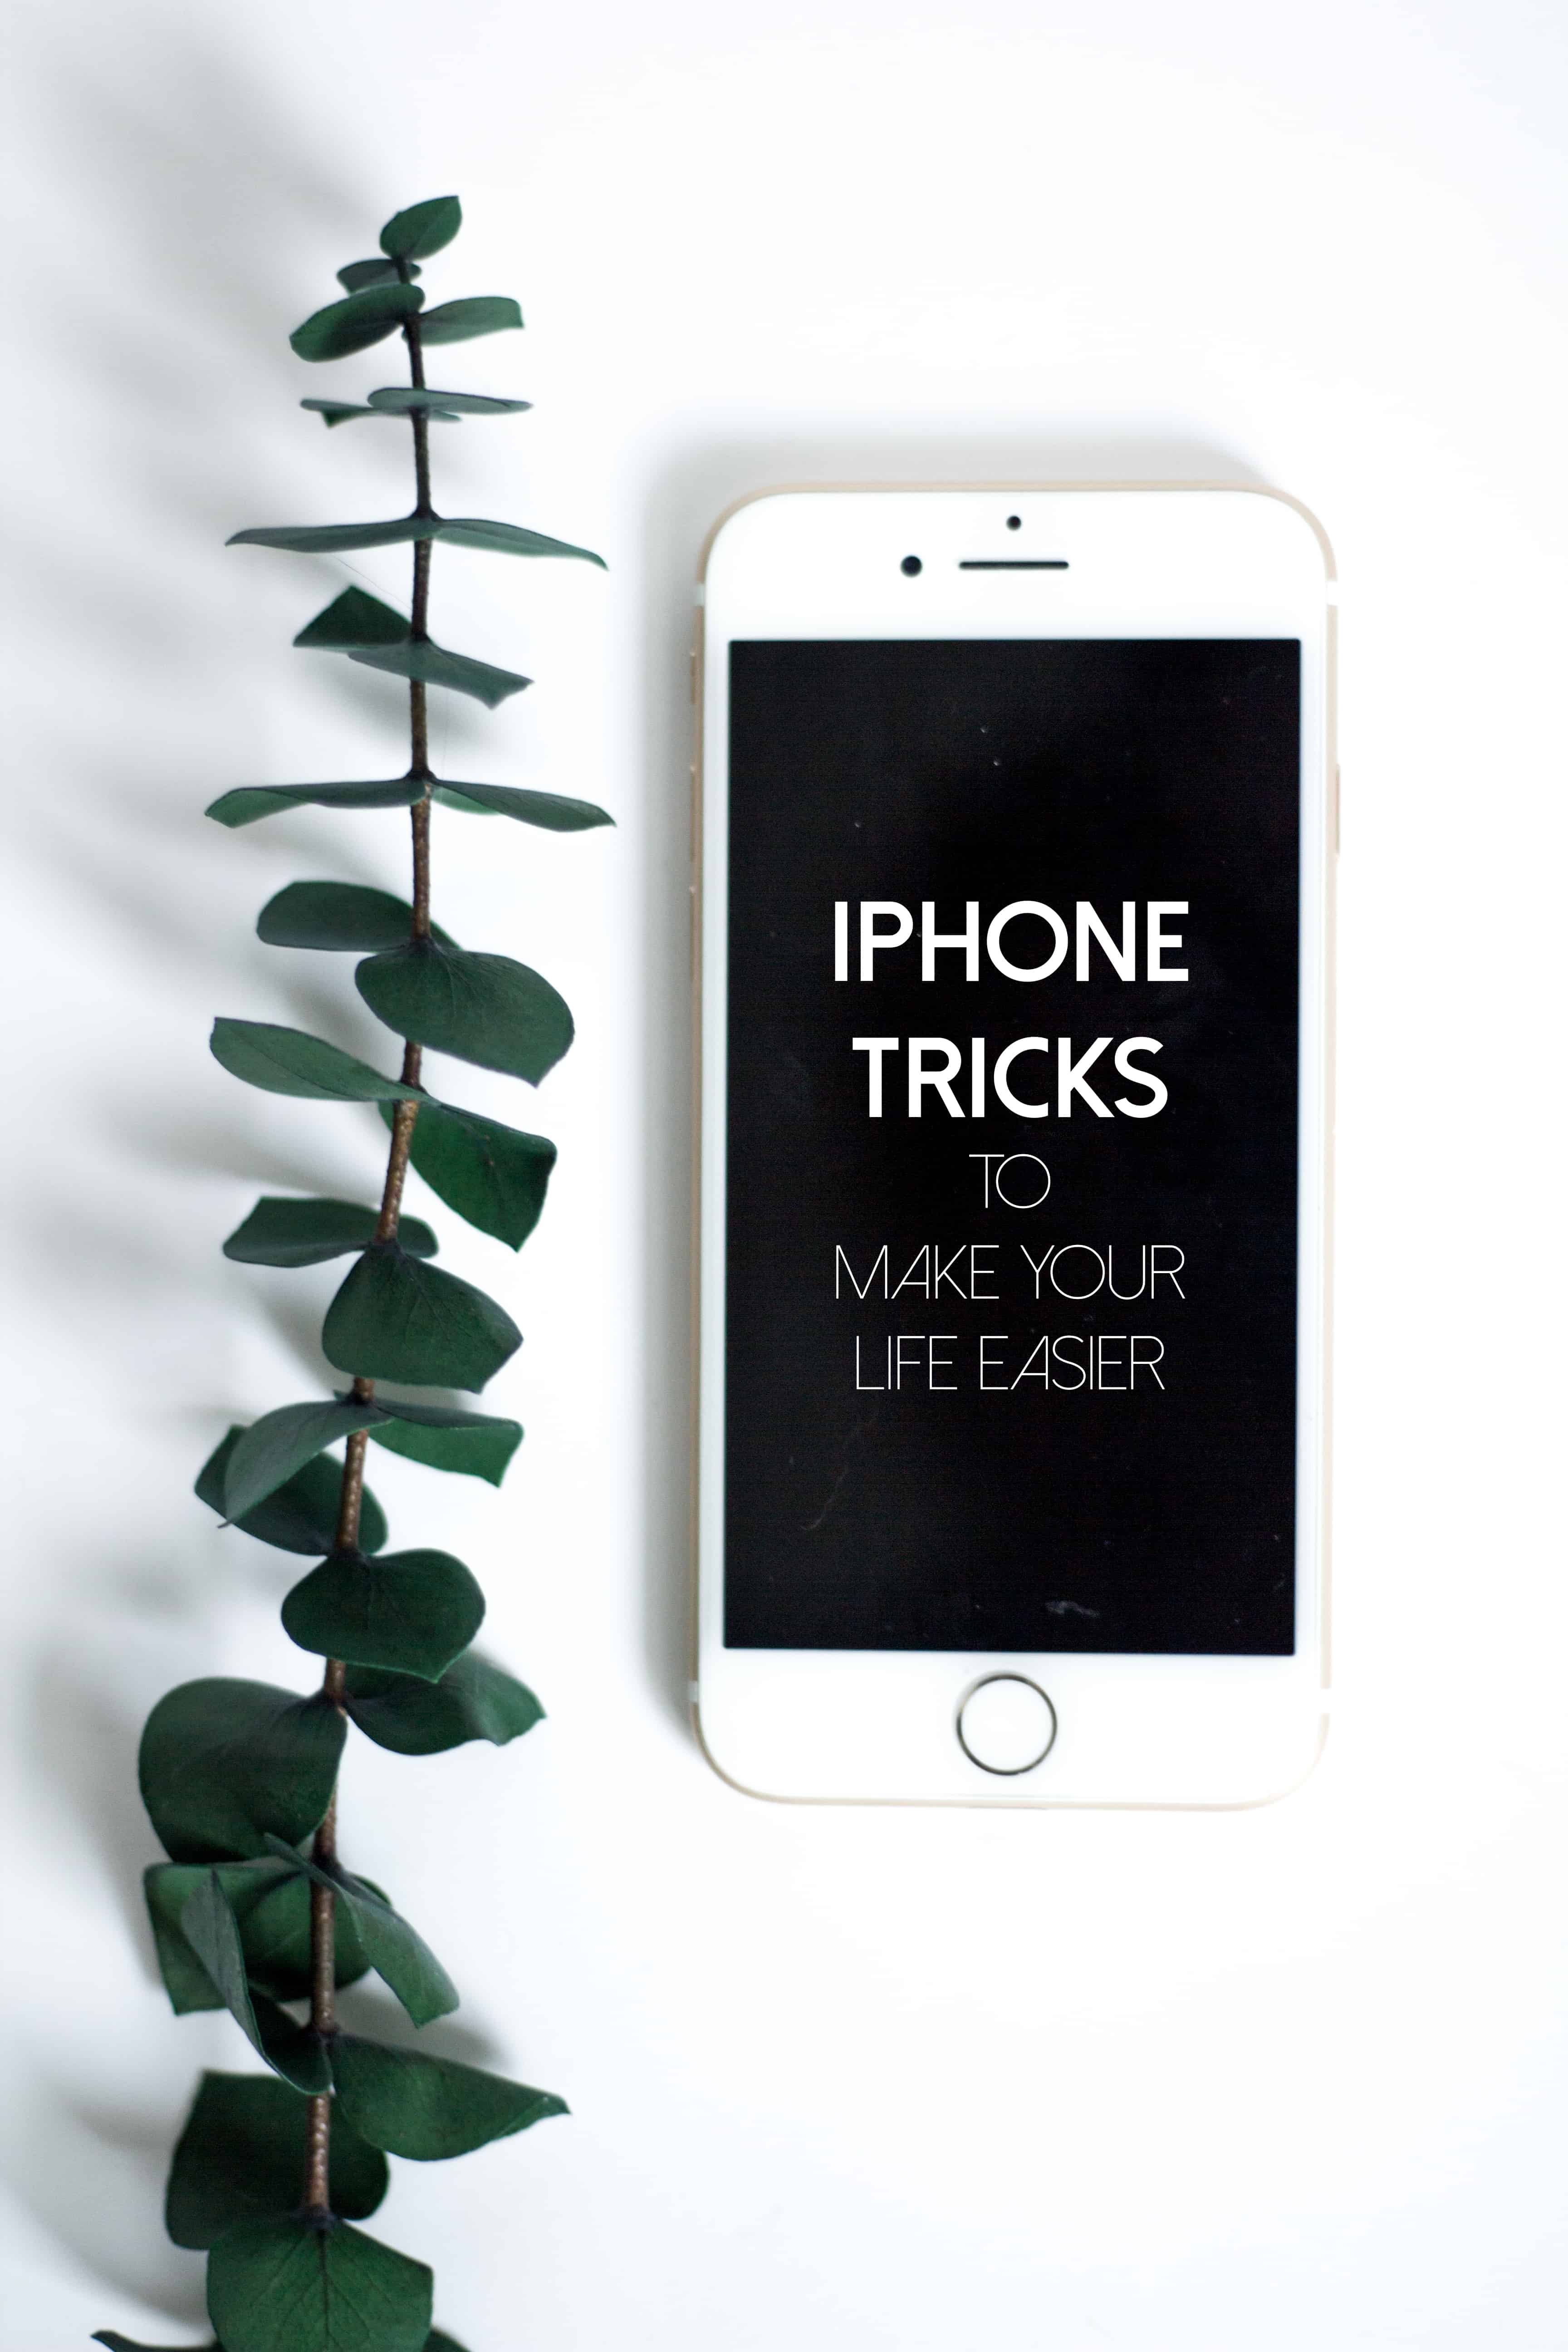 These are simple tips every iPhone user should know!